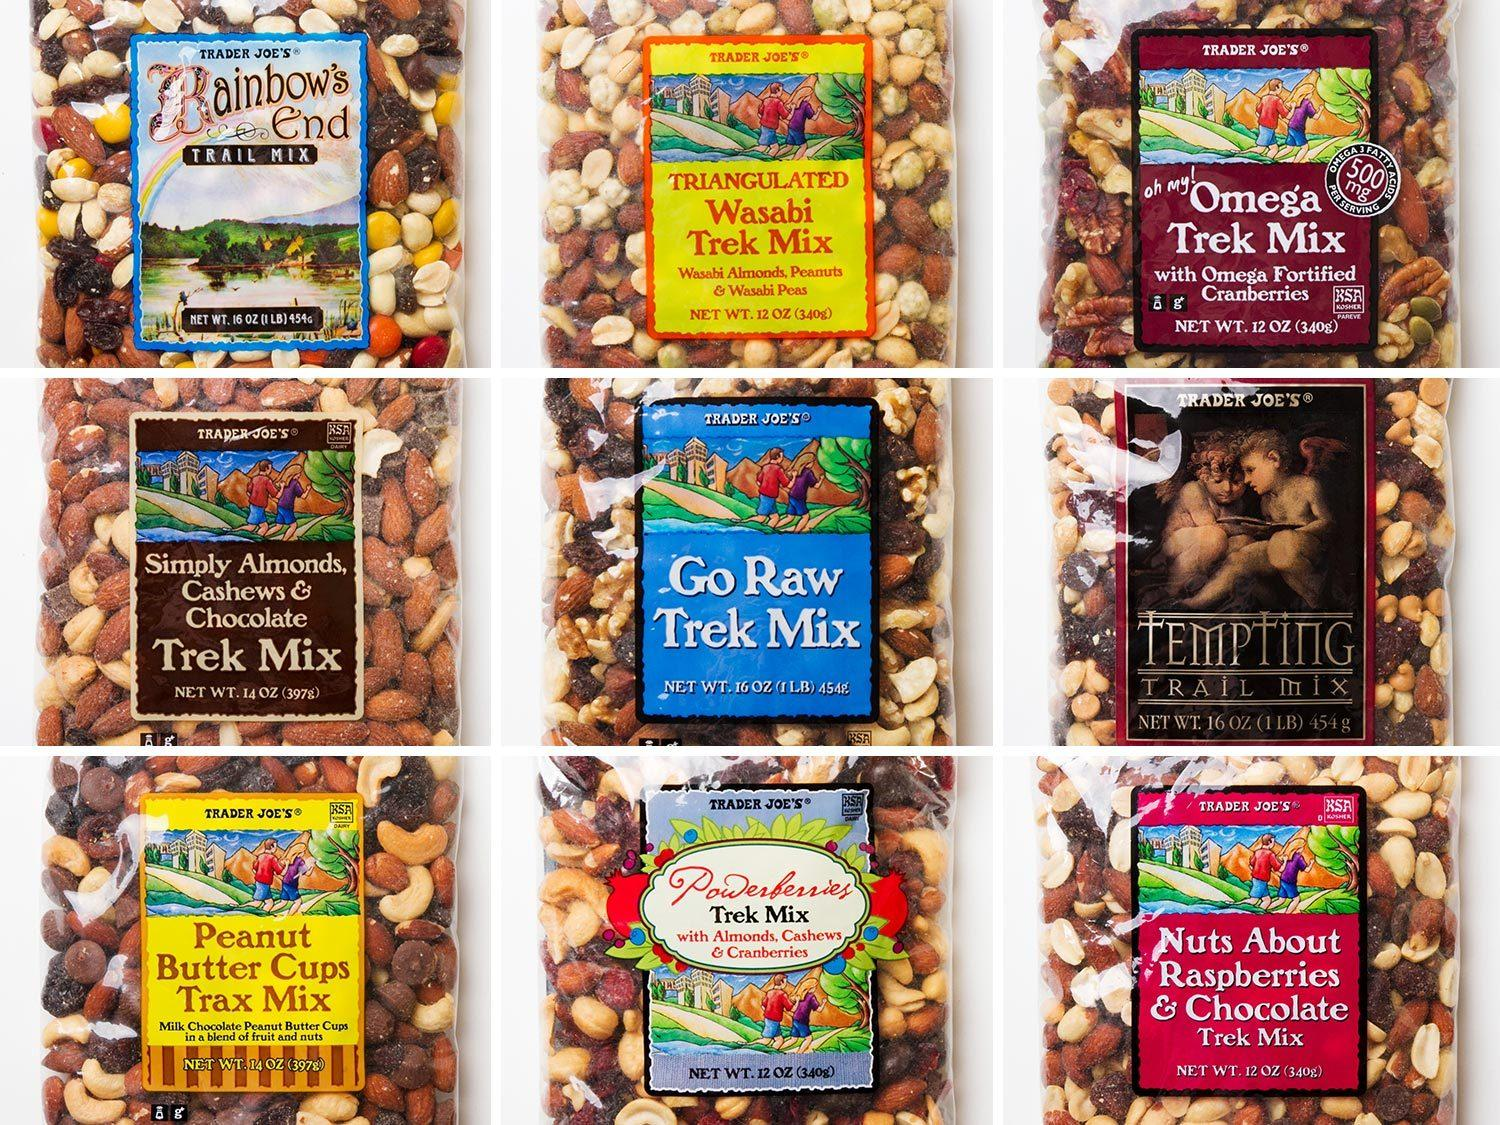 We Try All 18 Kinds of Trader Joe's Trail Mix | Serious Eats